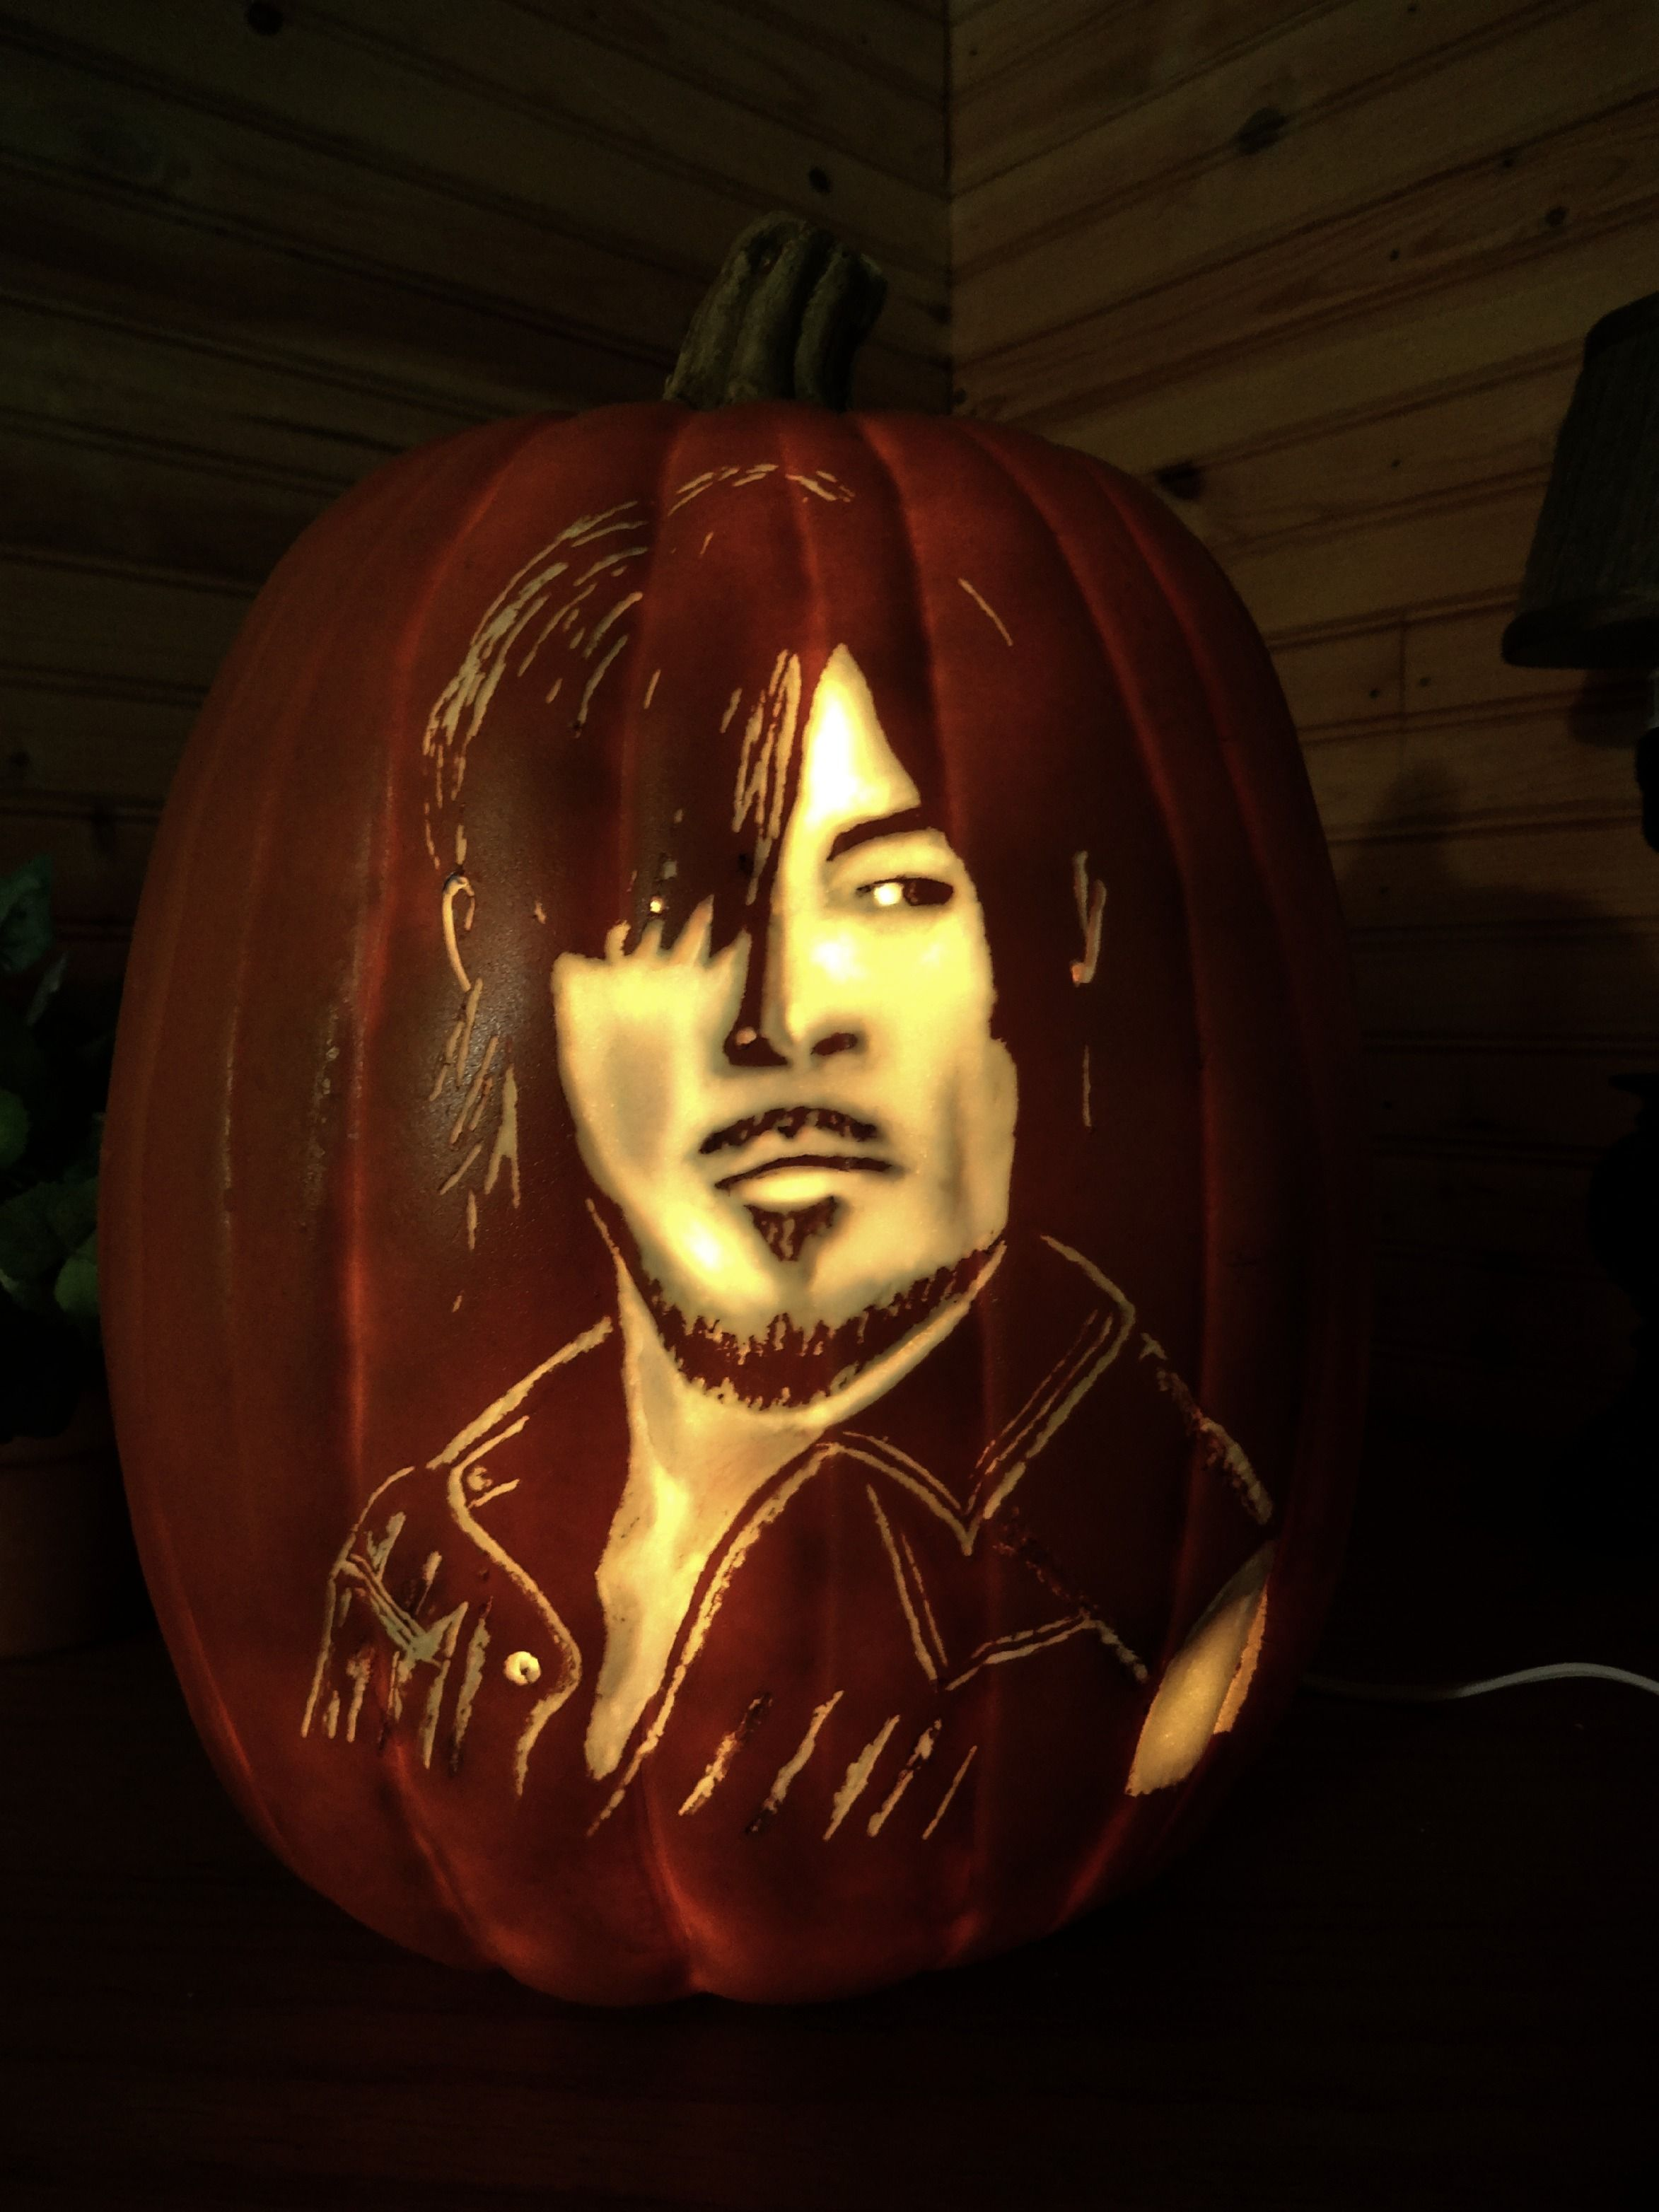 The walking dead daryl hand carved foam pumpkin on etsy.com